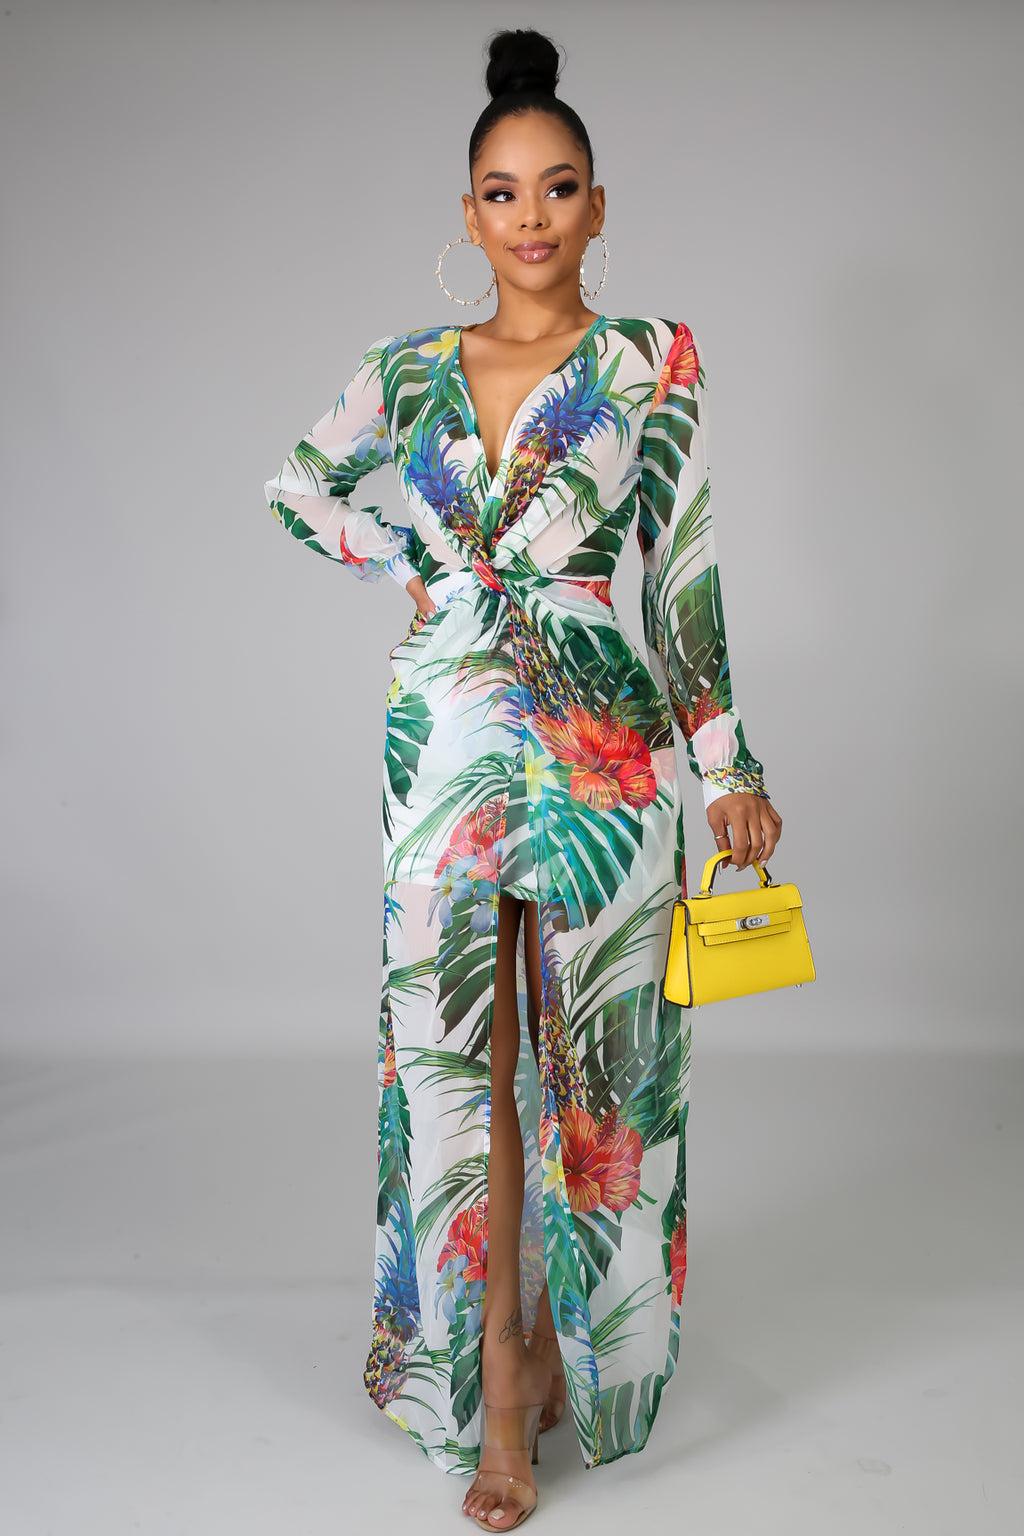 Vivid Floral Maxi Dress | GitiOnline